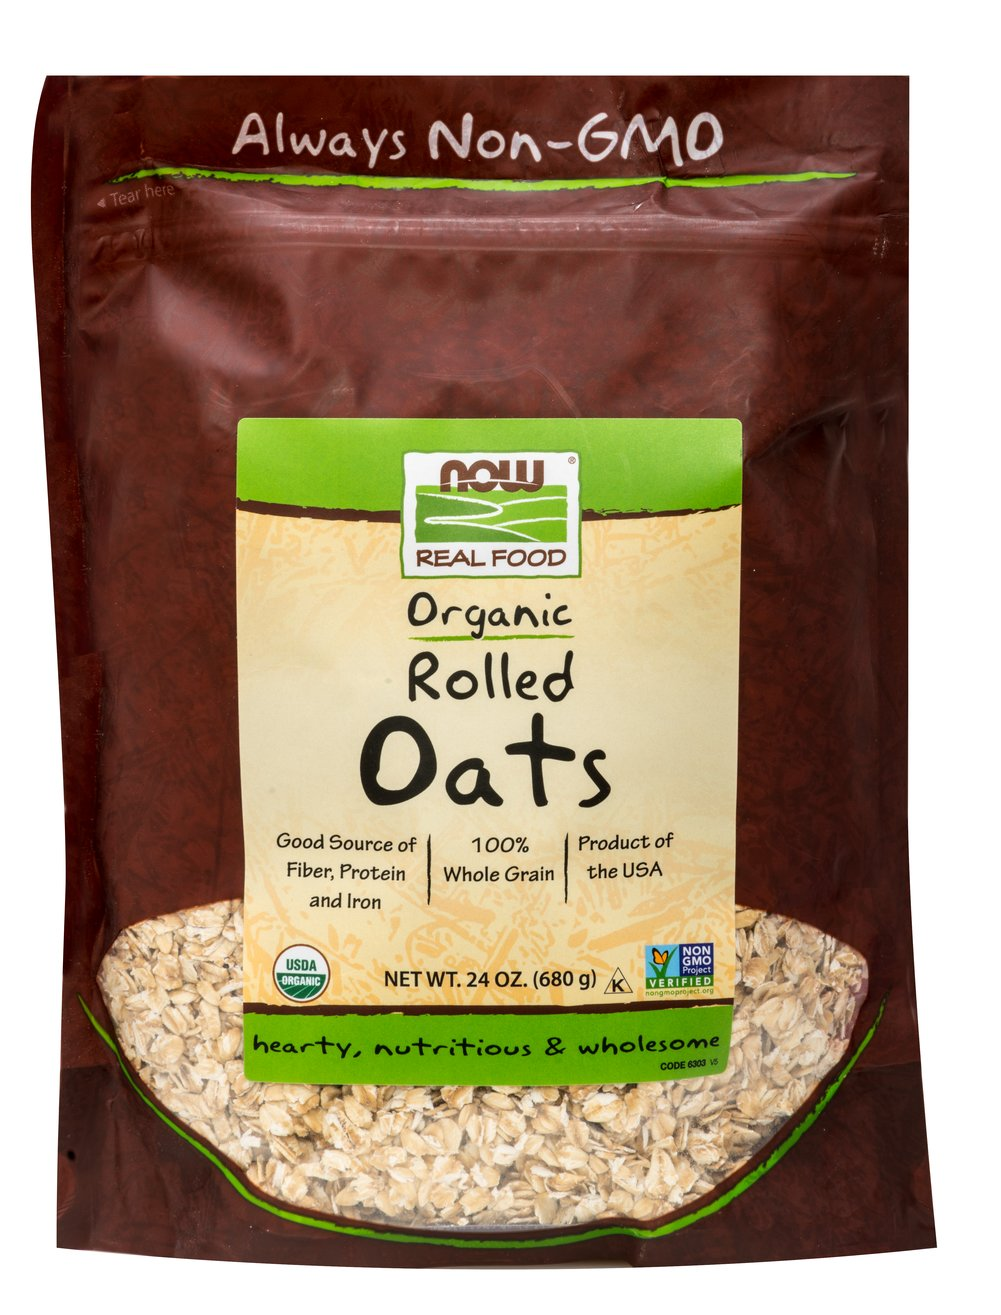 Organic Rolled Oats <b><p>From the Manufacturer: </b></p><p>Rolled oats are a favorite whole food than can be used in many recipes to add nutritional value. Rolled oats can be easily added to miffin mixes, pancake batter, cookie mixes and more. Contains 100% organic regular rolled oats.</p>  24 oz Bag  $7.99